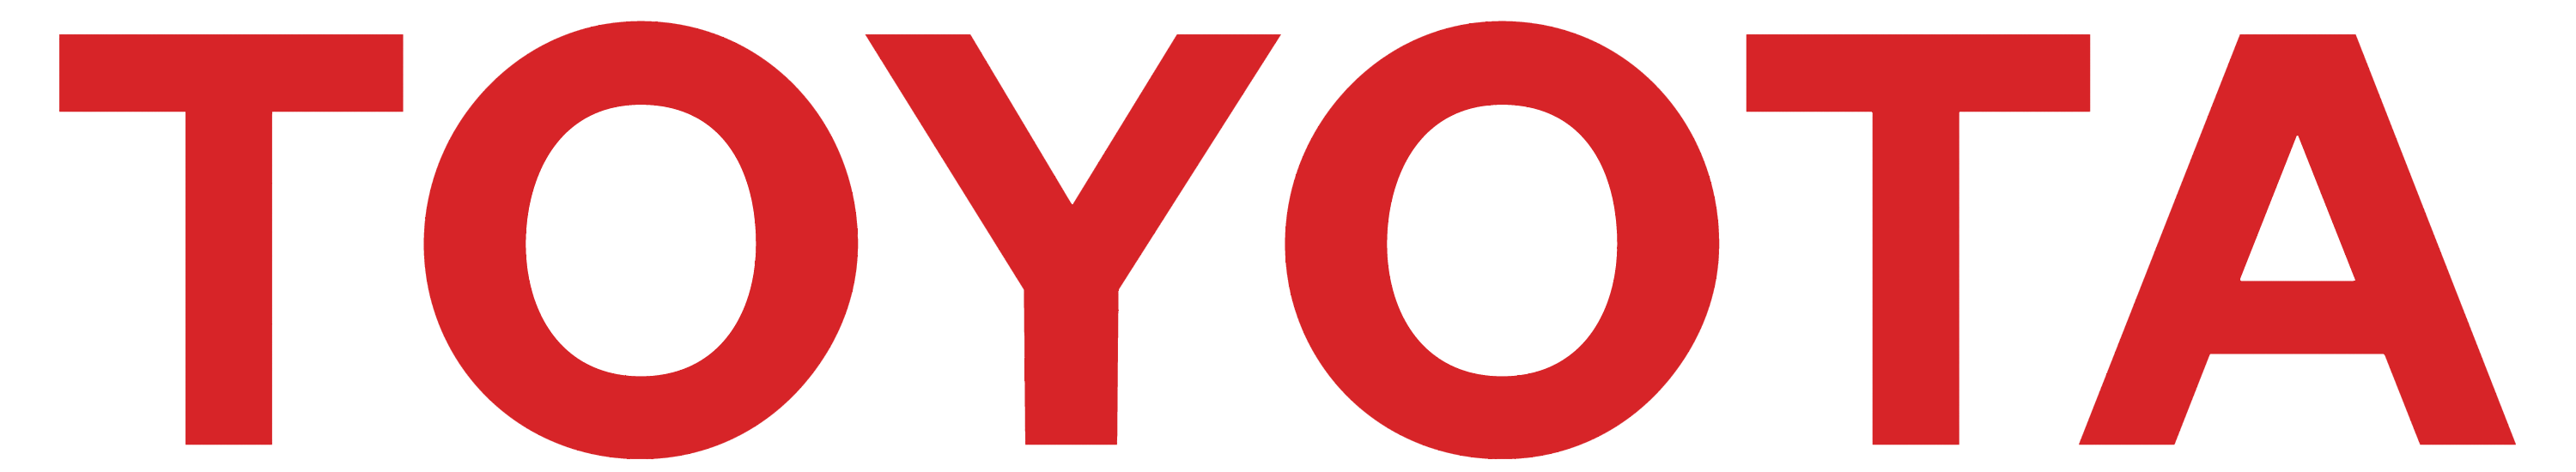 3000x550 Toyota Logo, Hd, Png, Meaning, Information